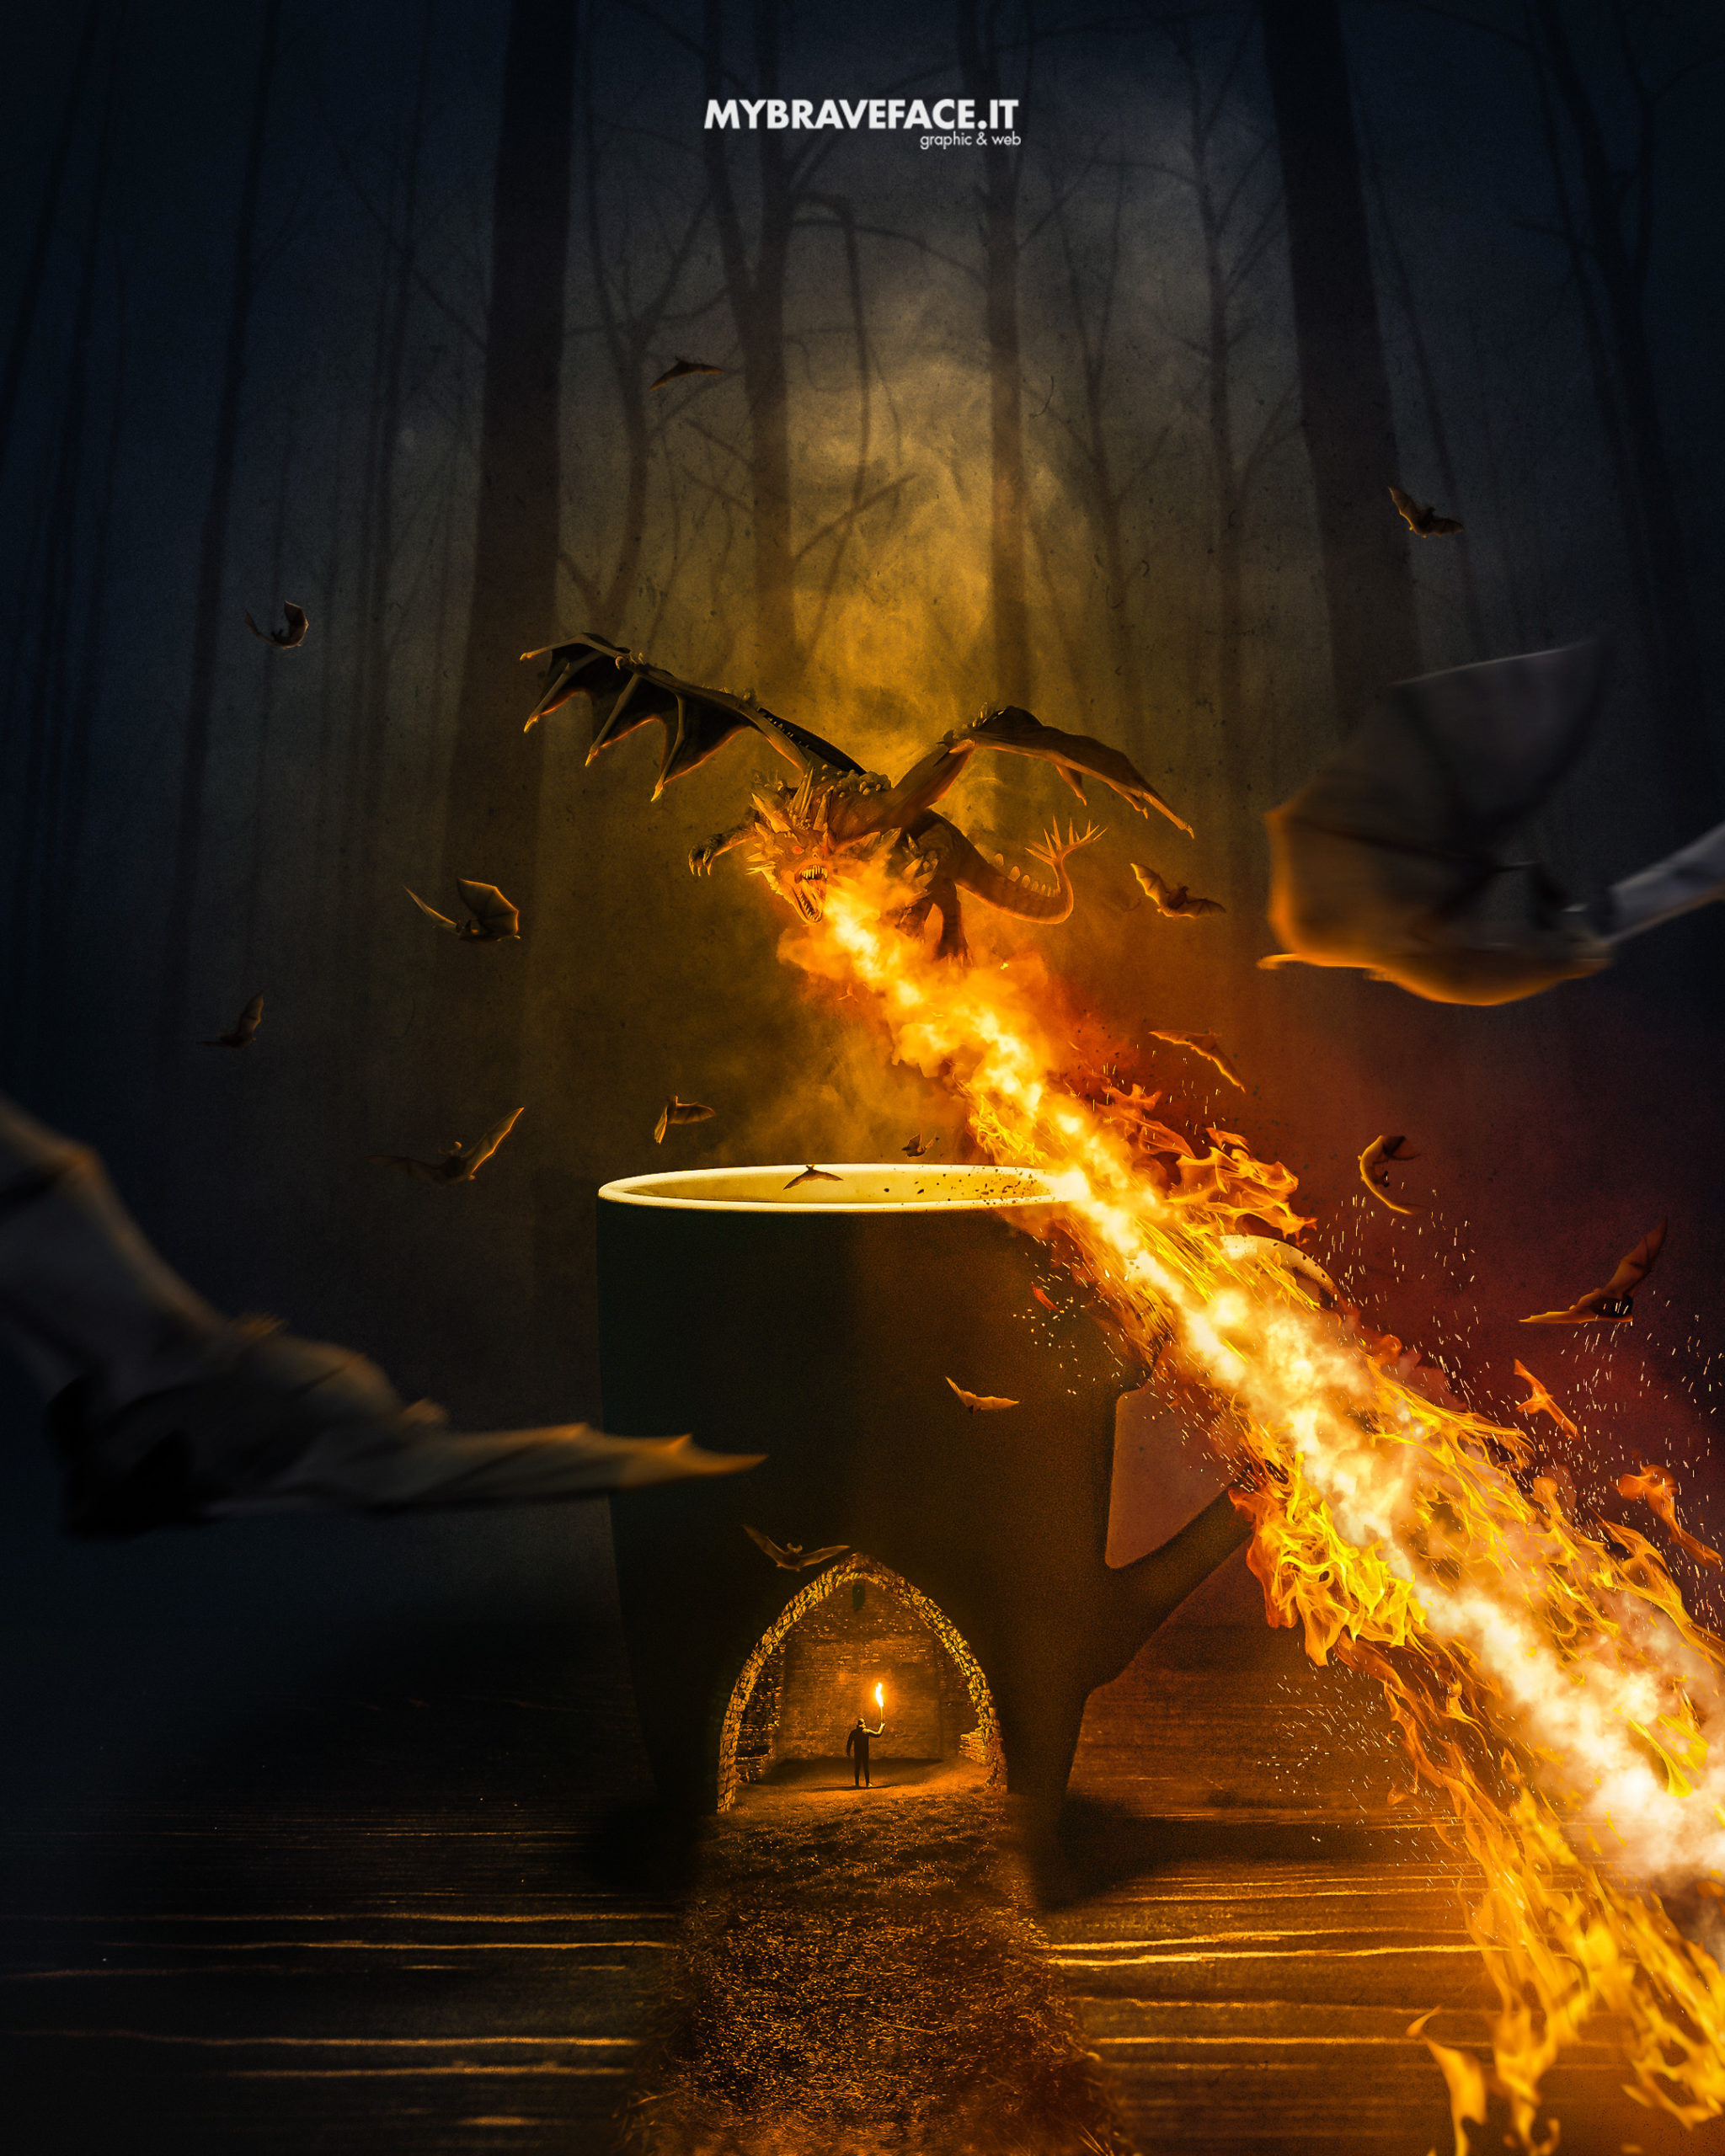 Hot coffee - photomanipulation